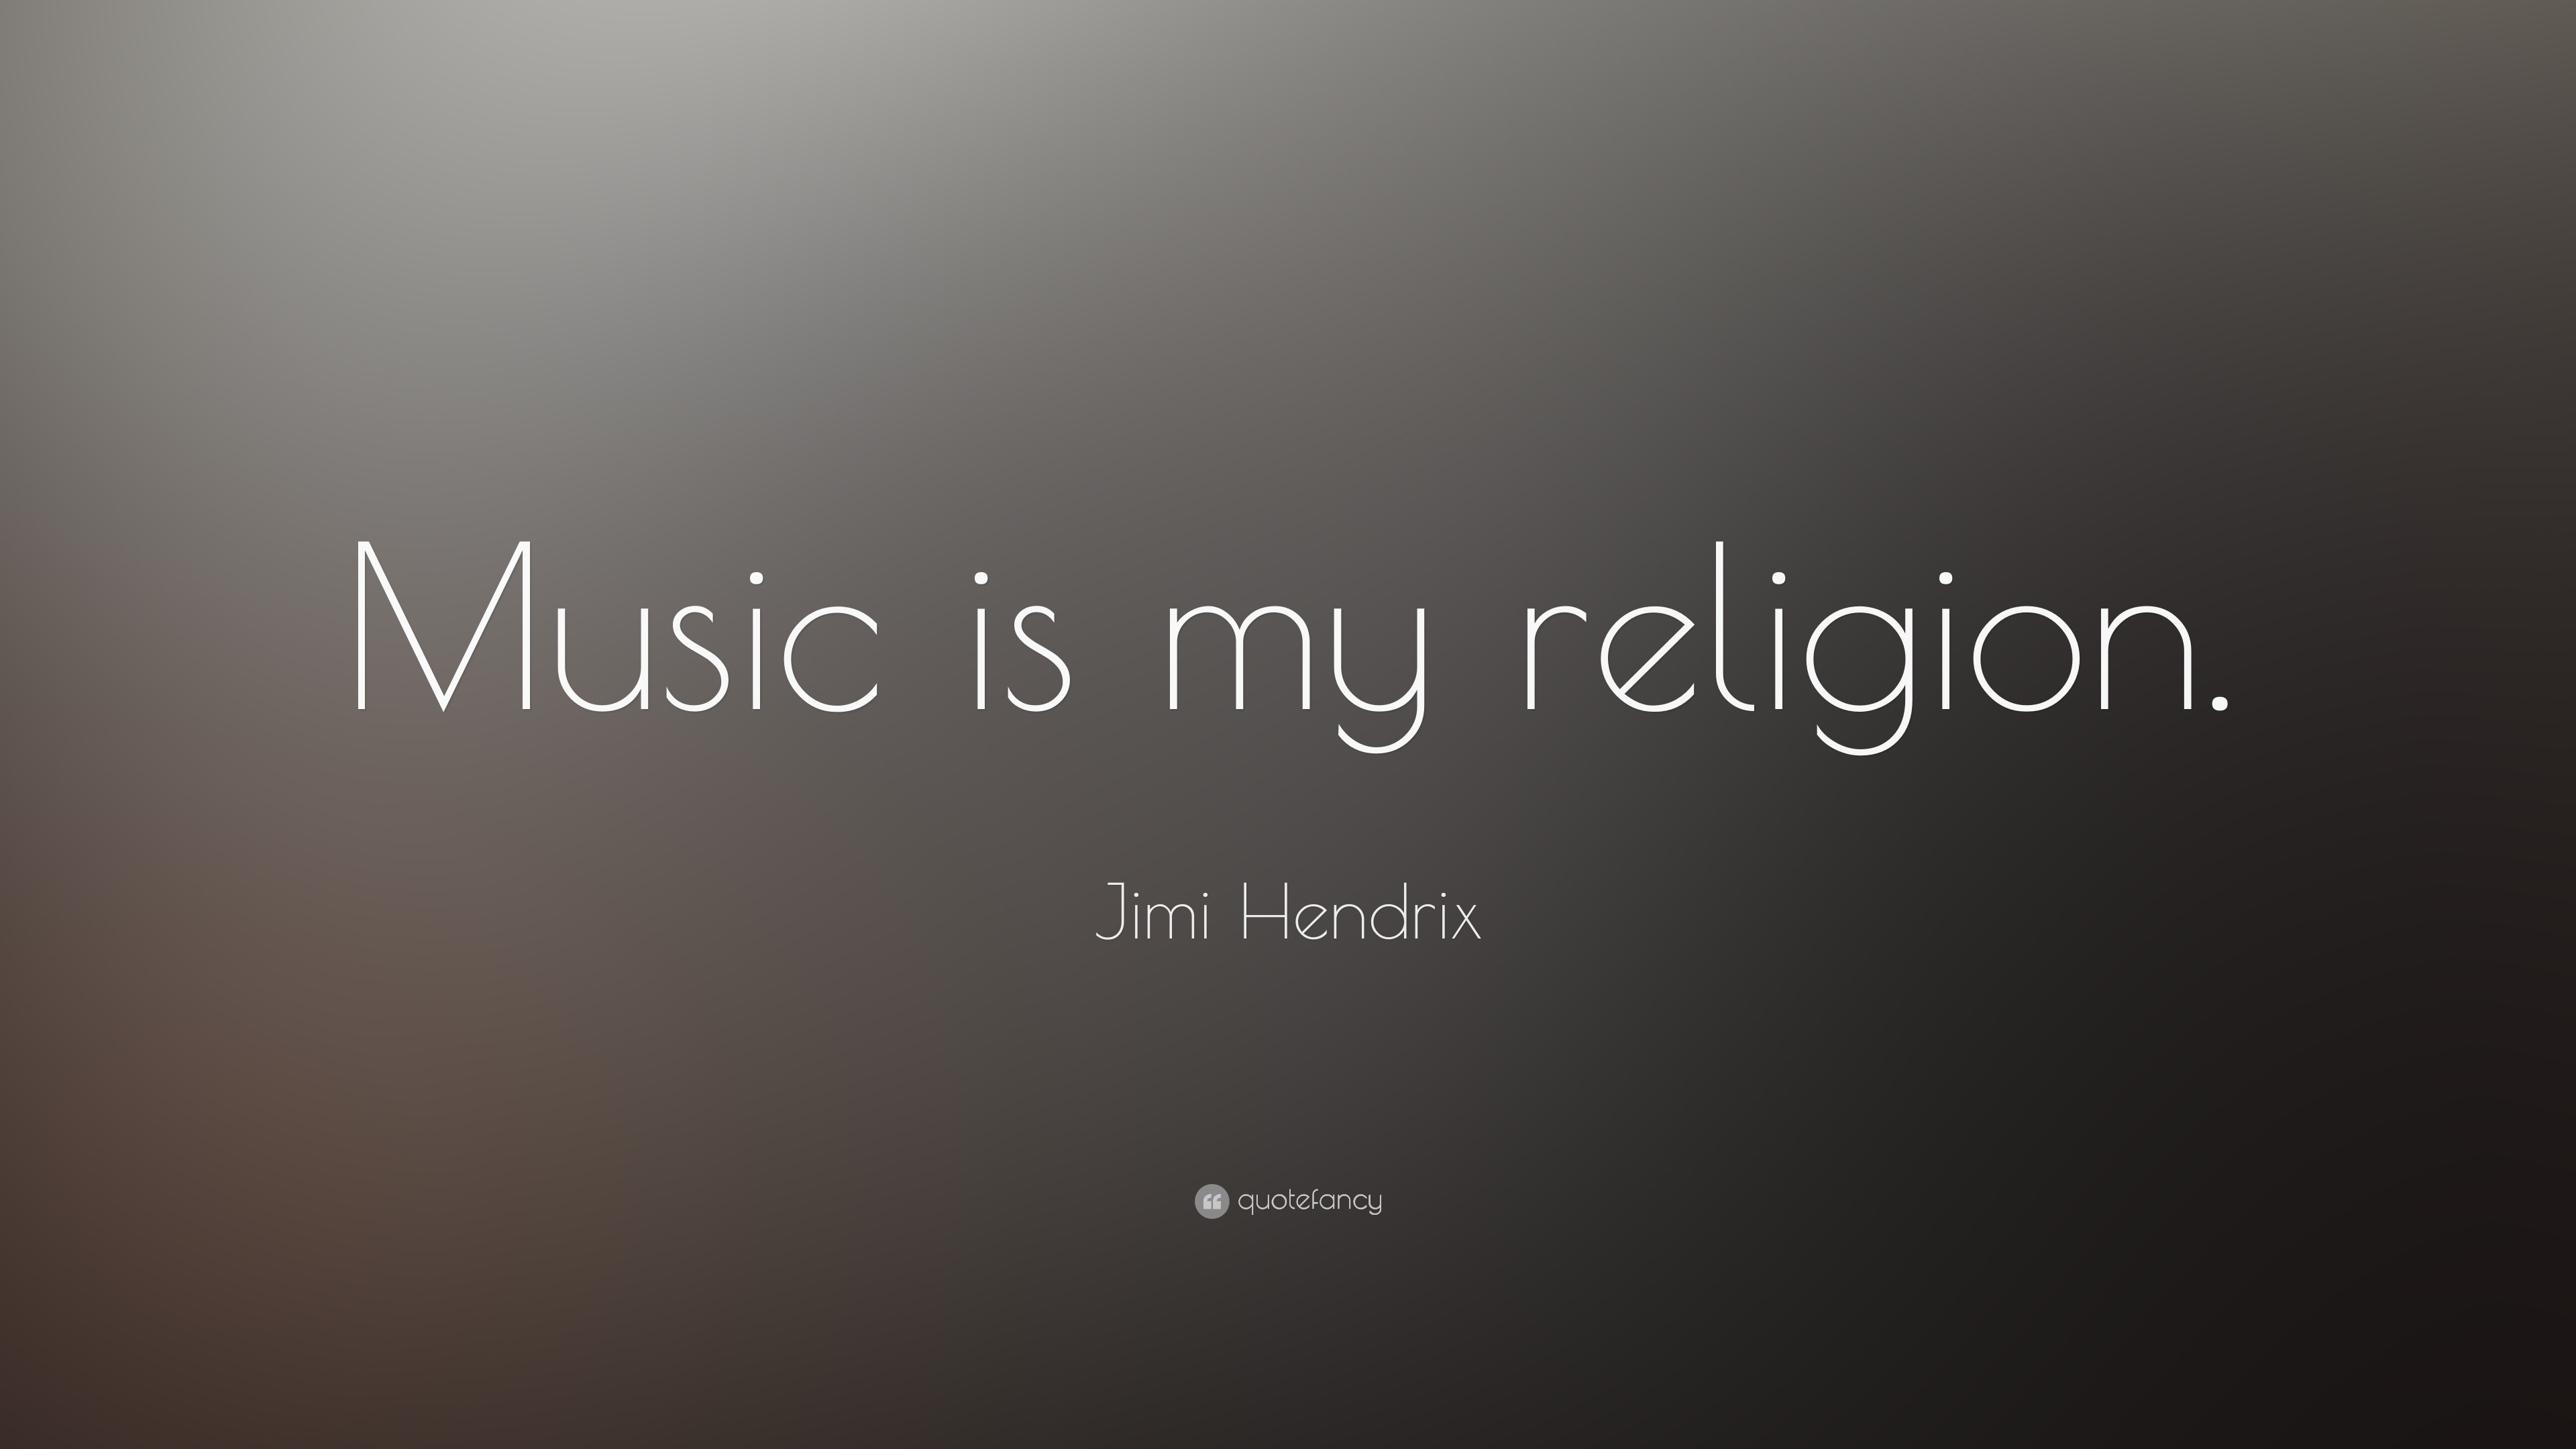 music quotes wallpapers - photo #18